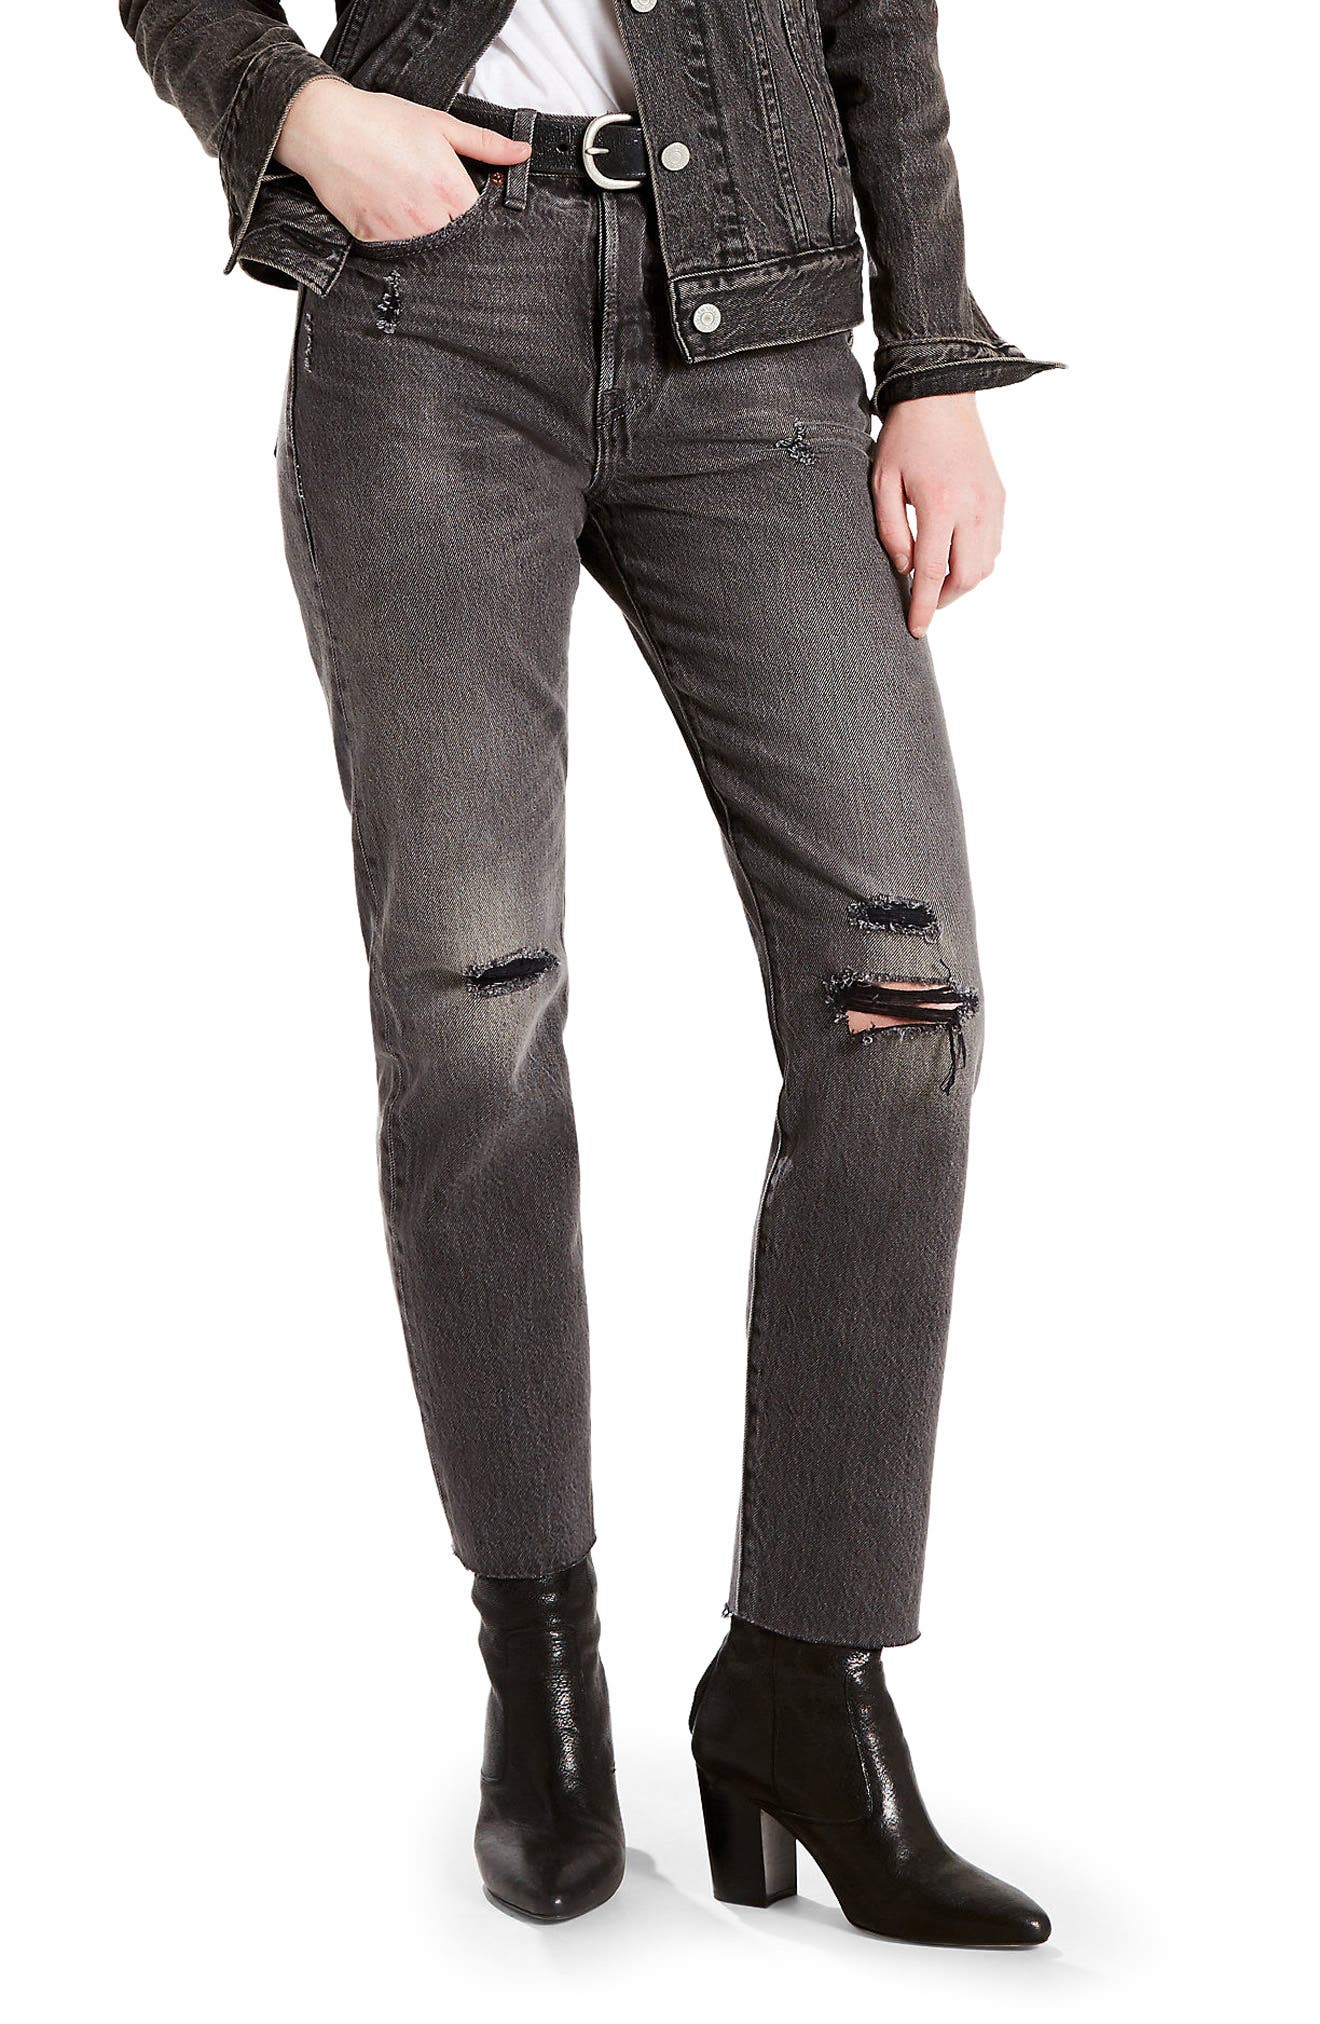 Alternate Image 1 Selected - Levi's® Wedgie Icon Distressed Straight Leg Jeans (Grey Tumble)